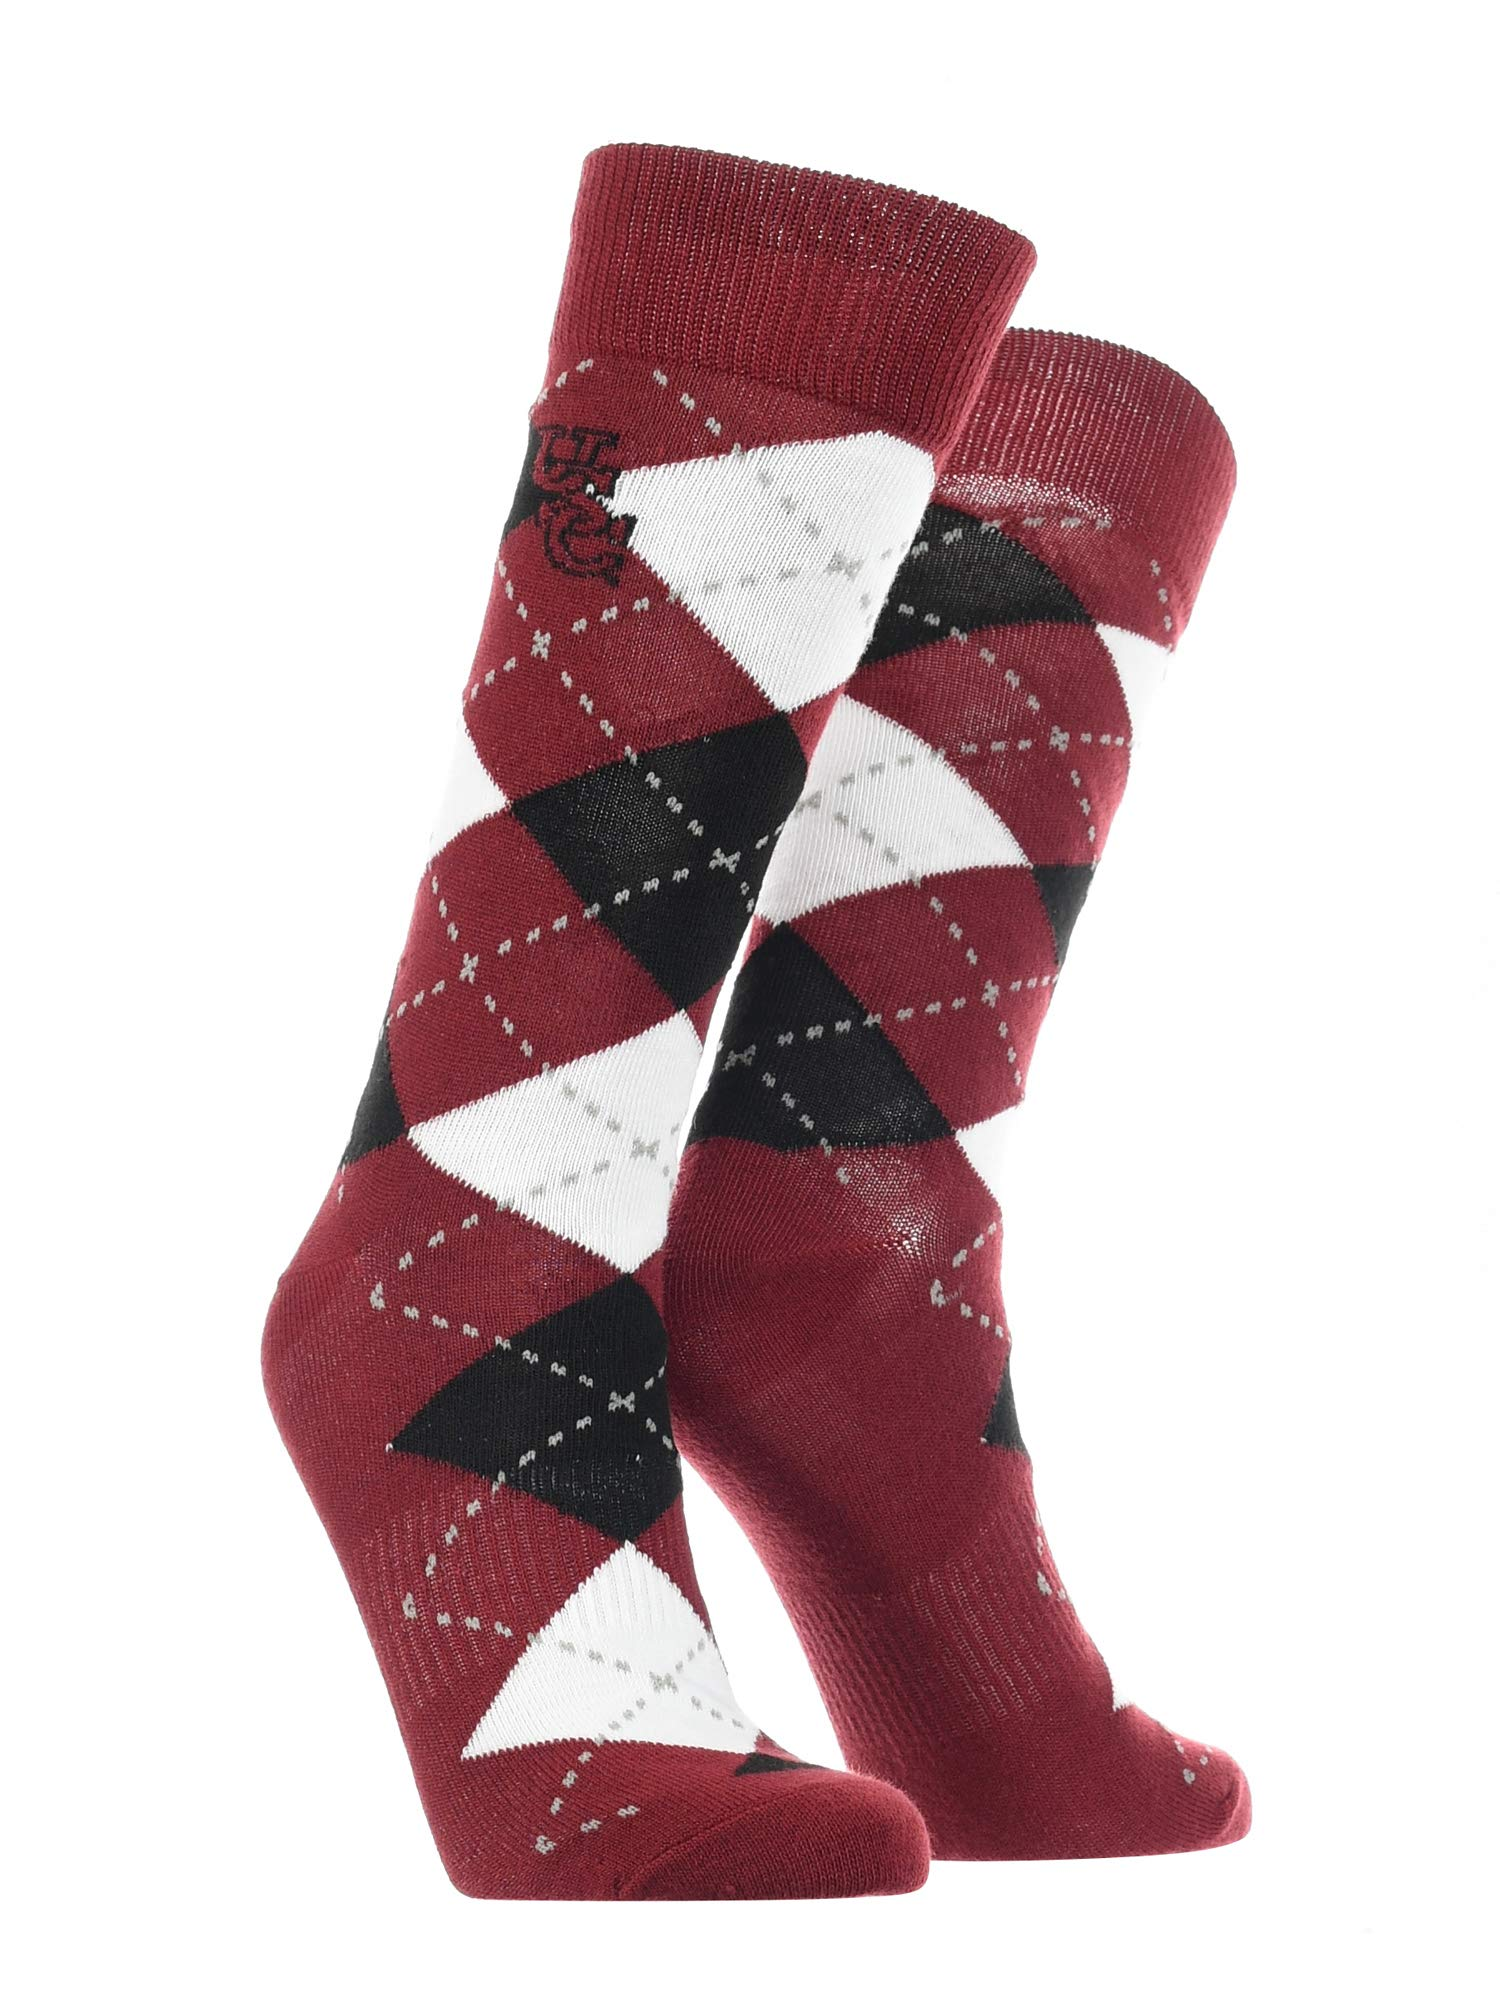 TCK South Carolina Fighting Gamecocks Socks Basic Crew White Socks